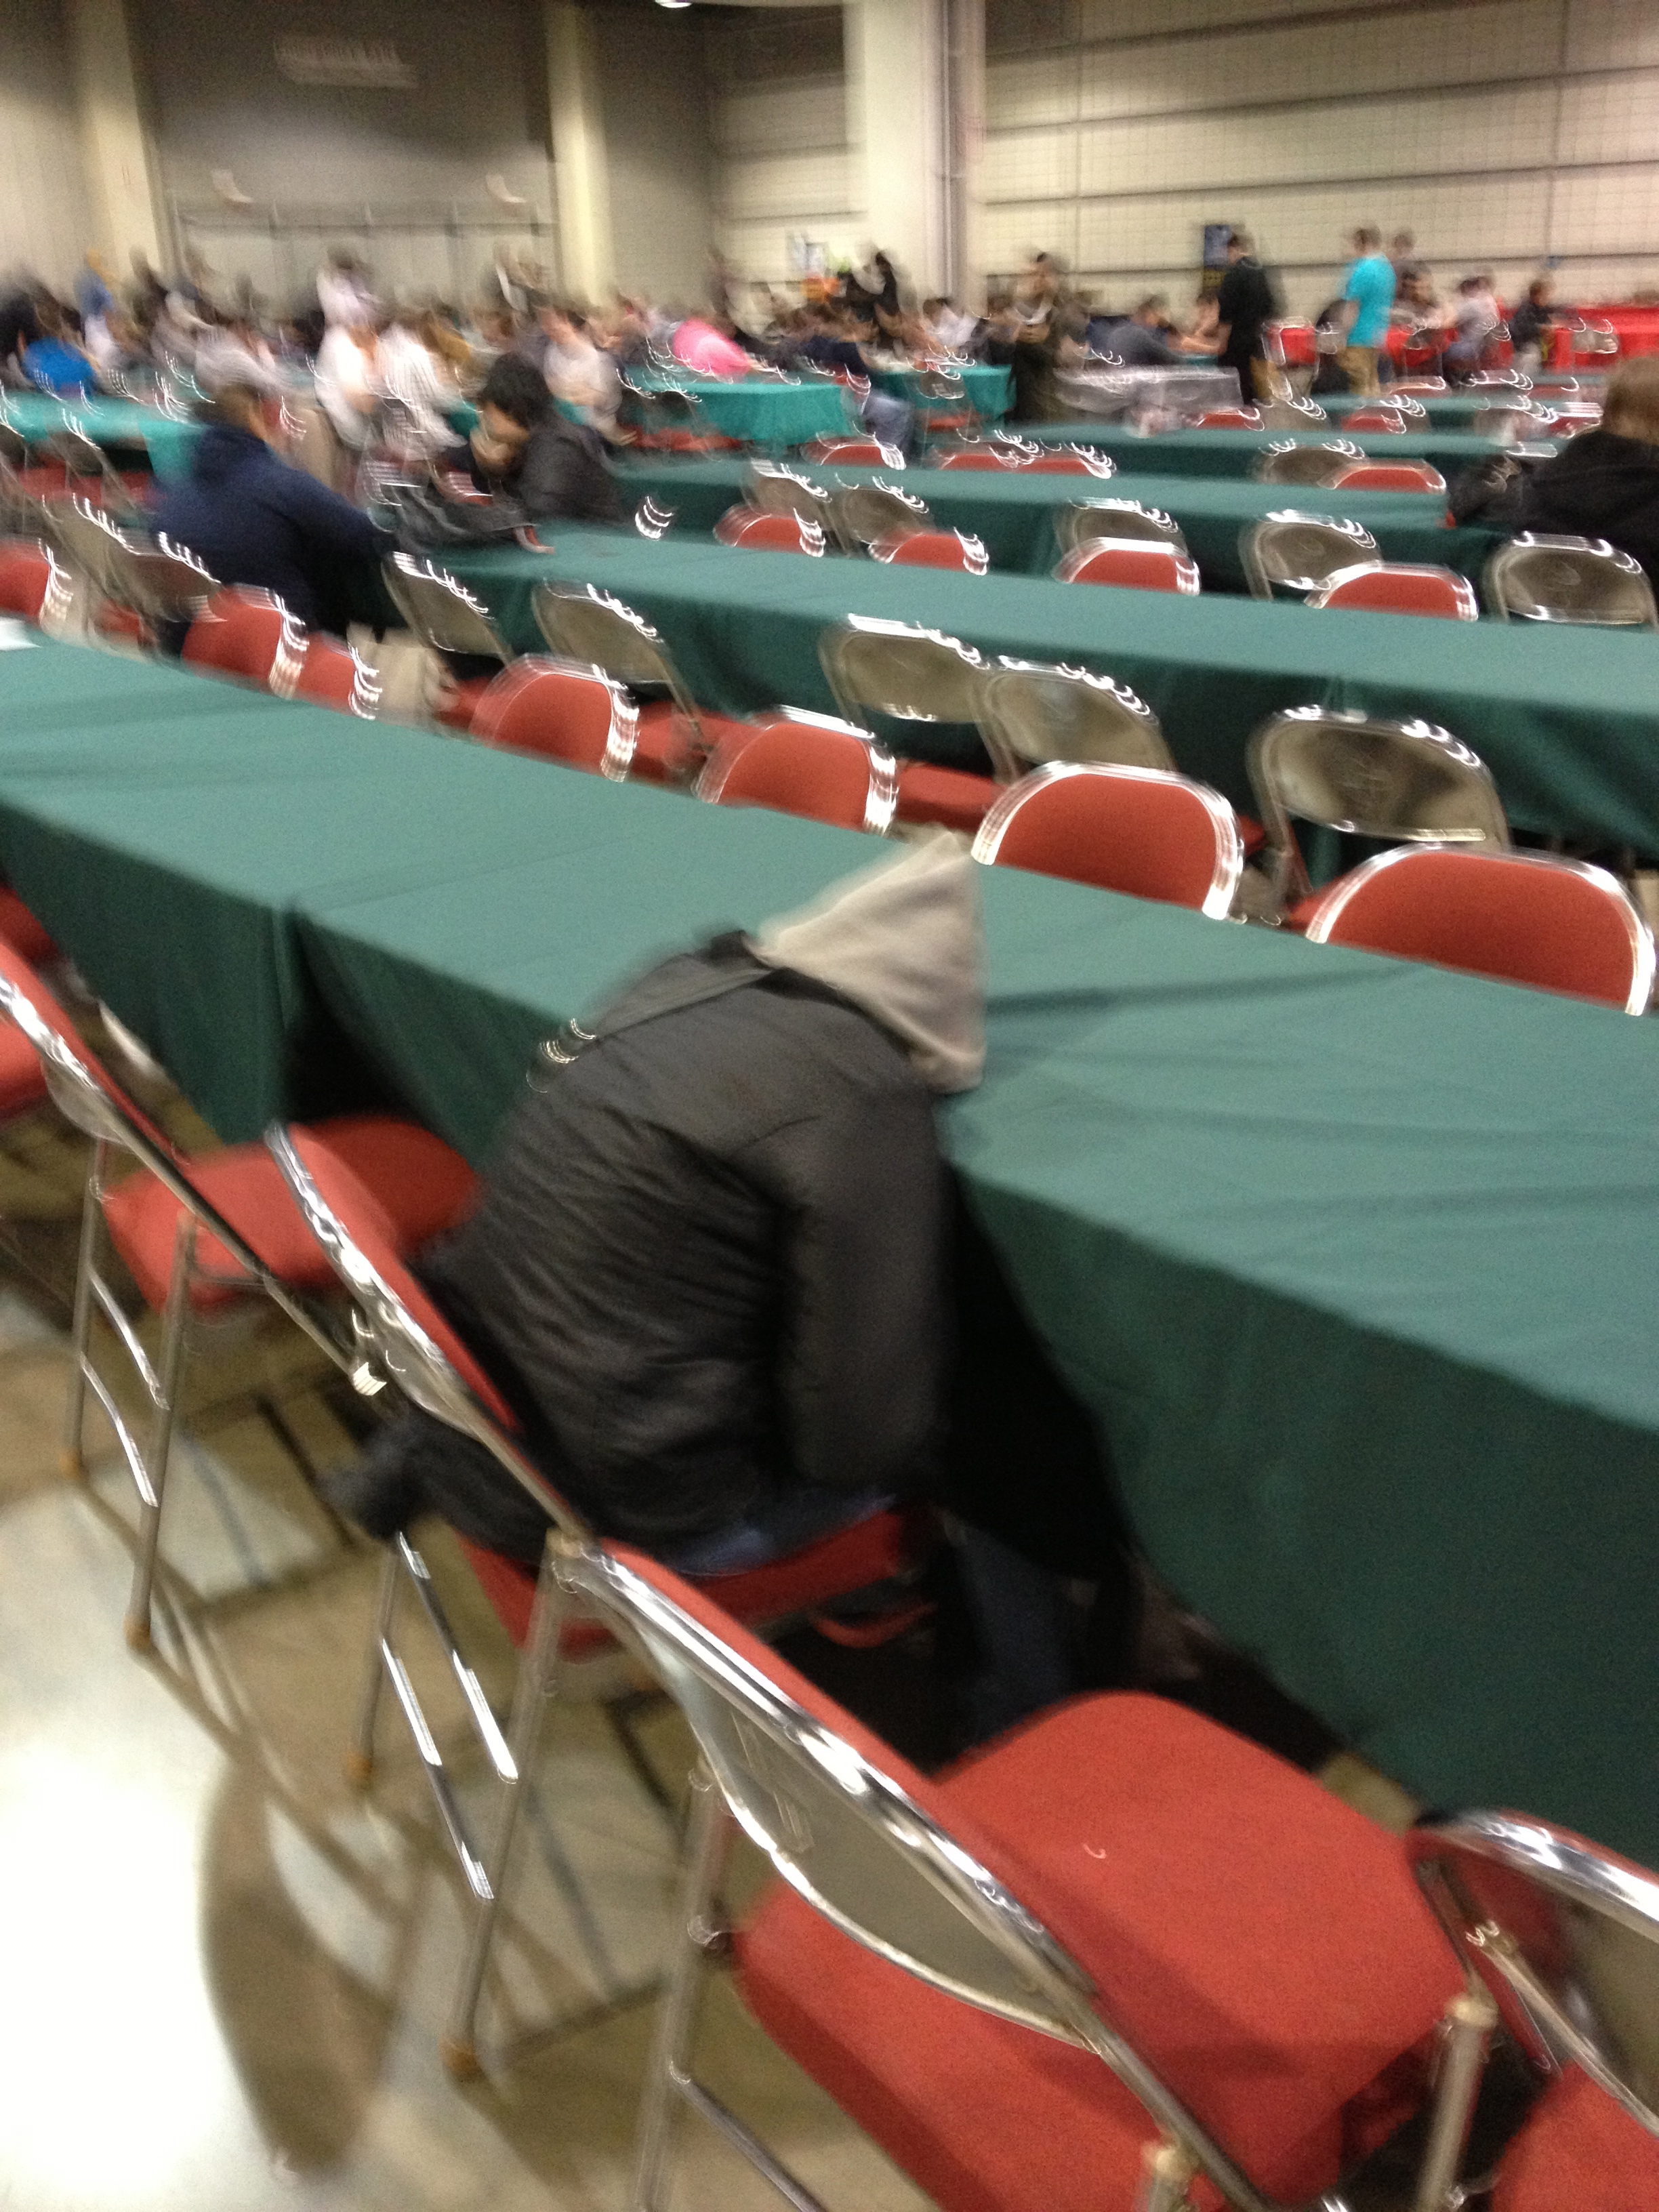 I saw this guy before I think R1, and it just cracked me up. I don't think I've ever seen a guy with his head more flatly on a table.